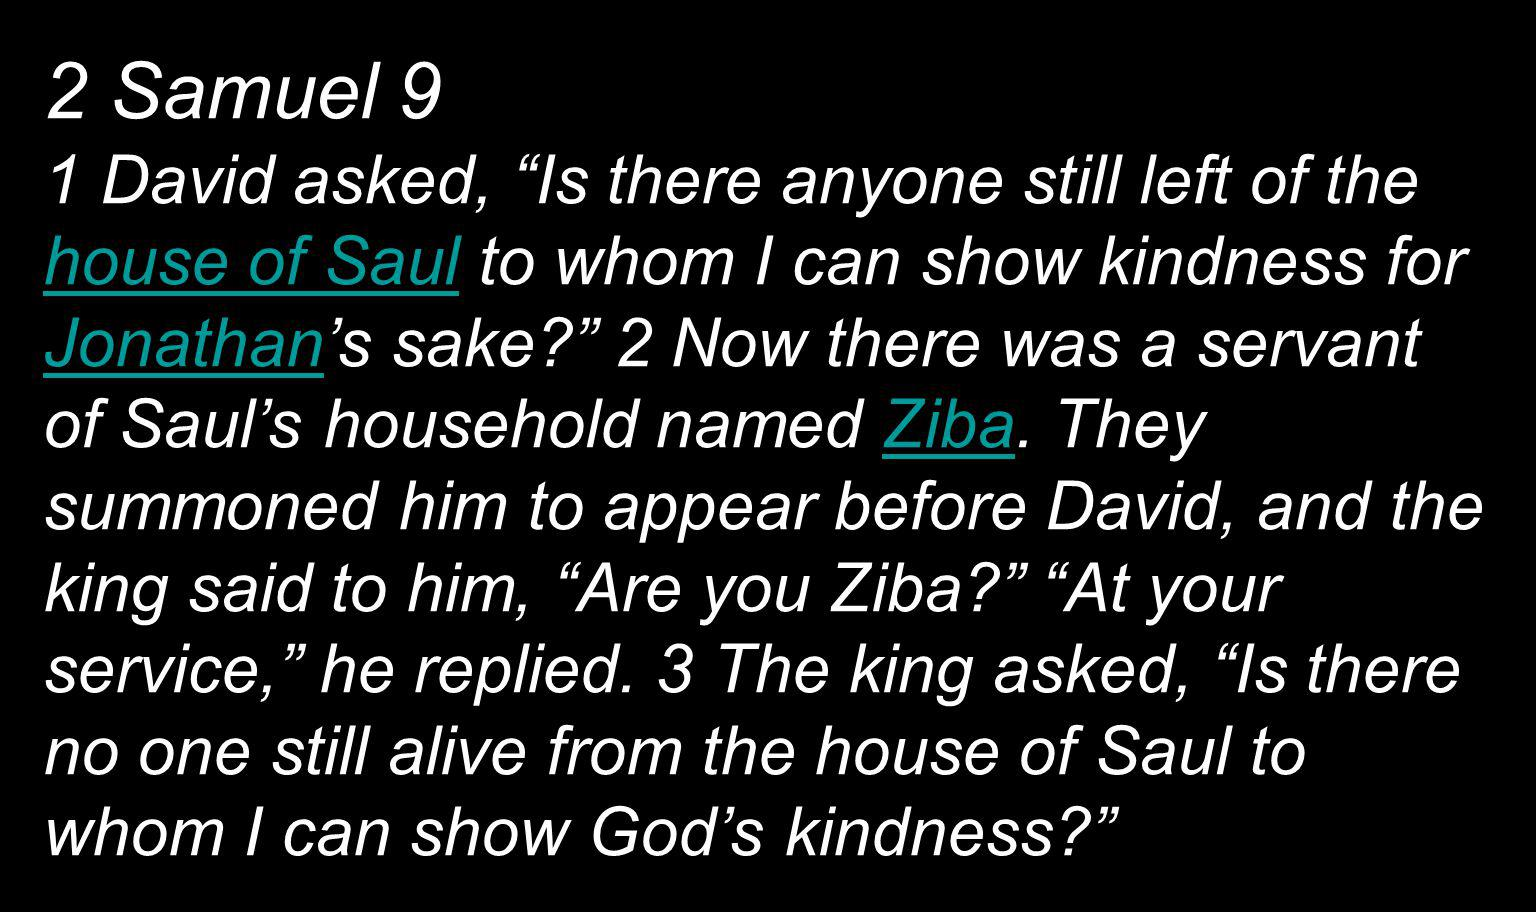 2 Samuel 9 1 David asked, Is there anyone still left of the house of Saul to whom I can show kindness for Jonathan's sake 2 Now there was a servant of Saul's household named Ziba.